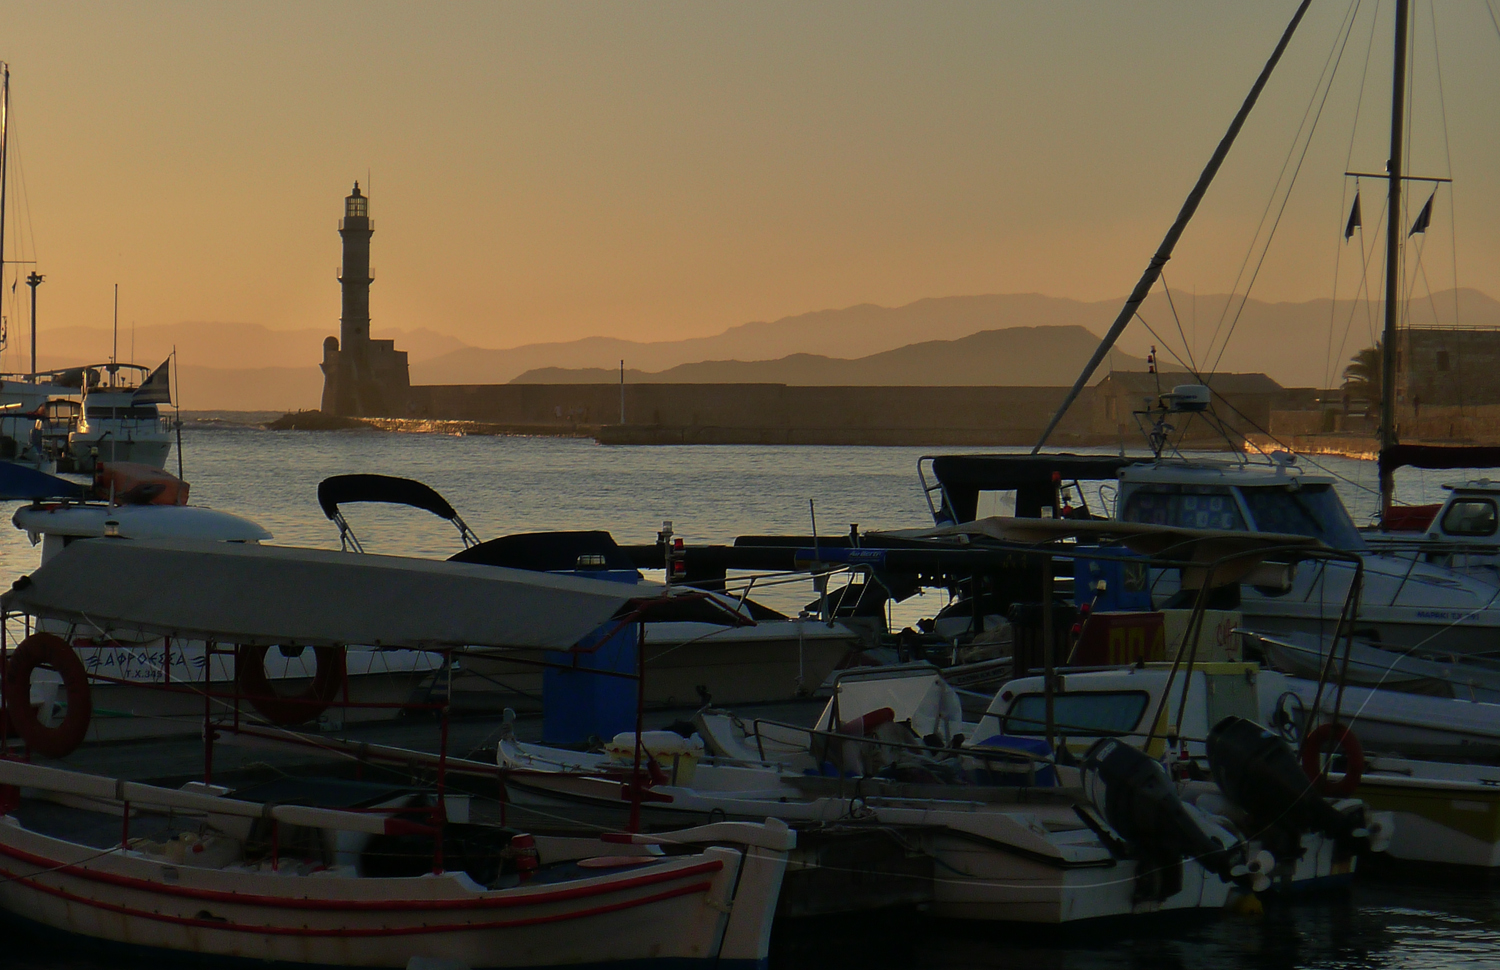 * Good morning Chania.